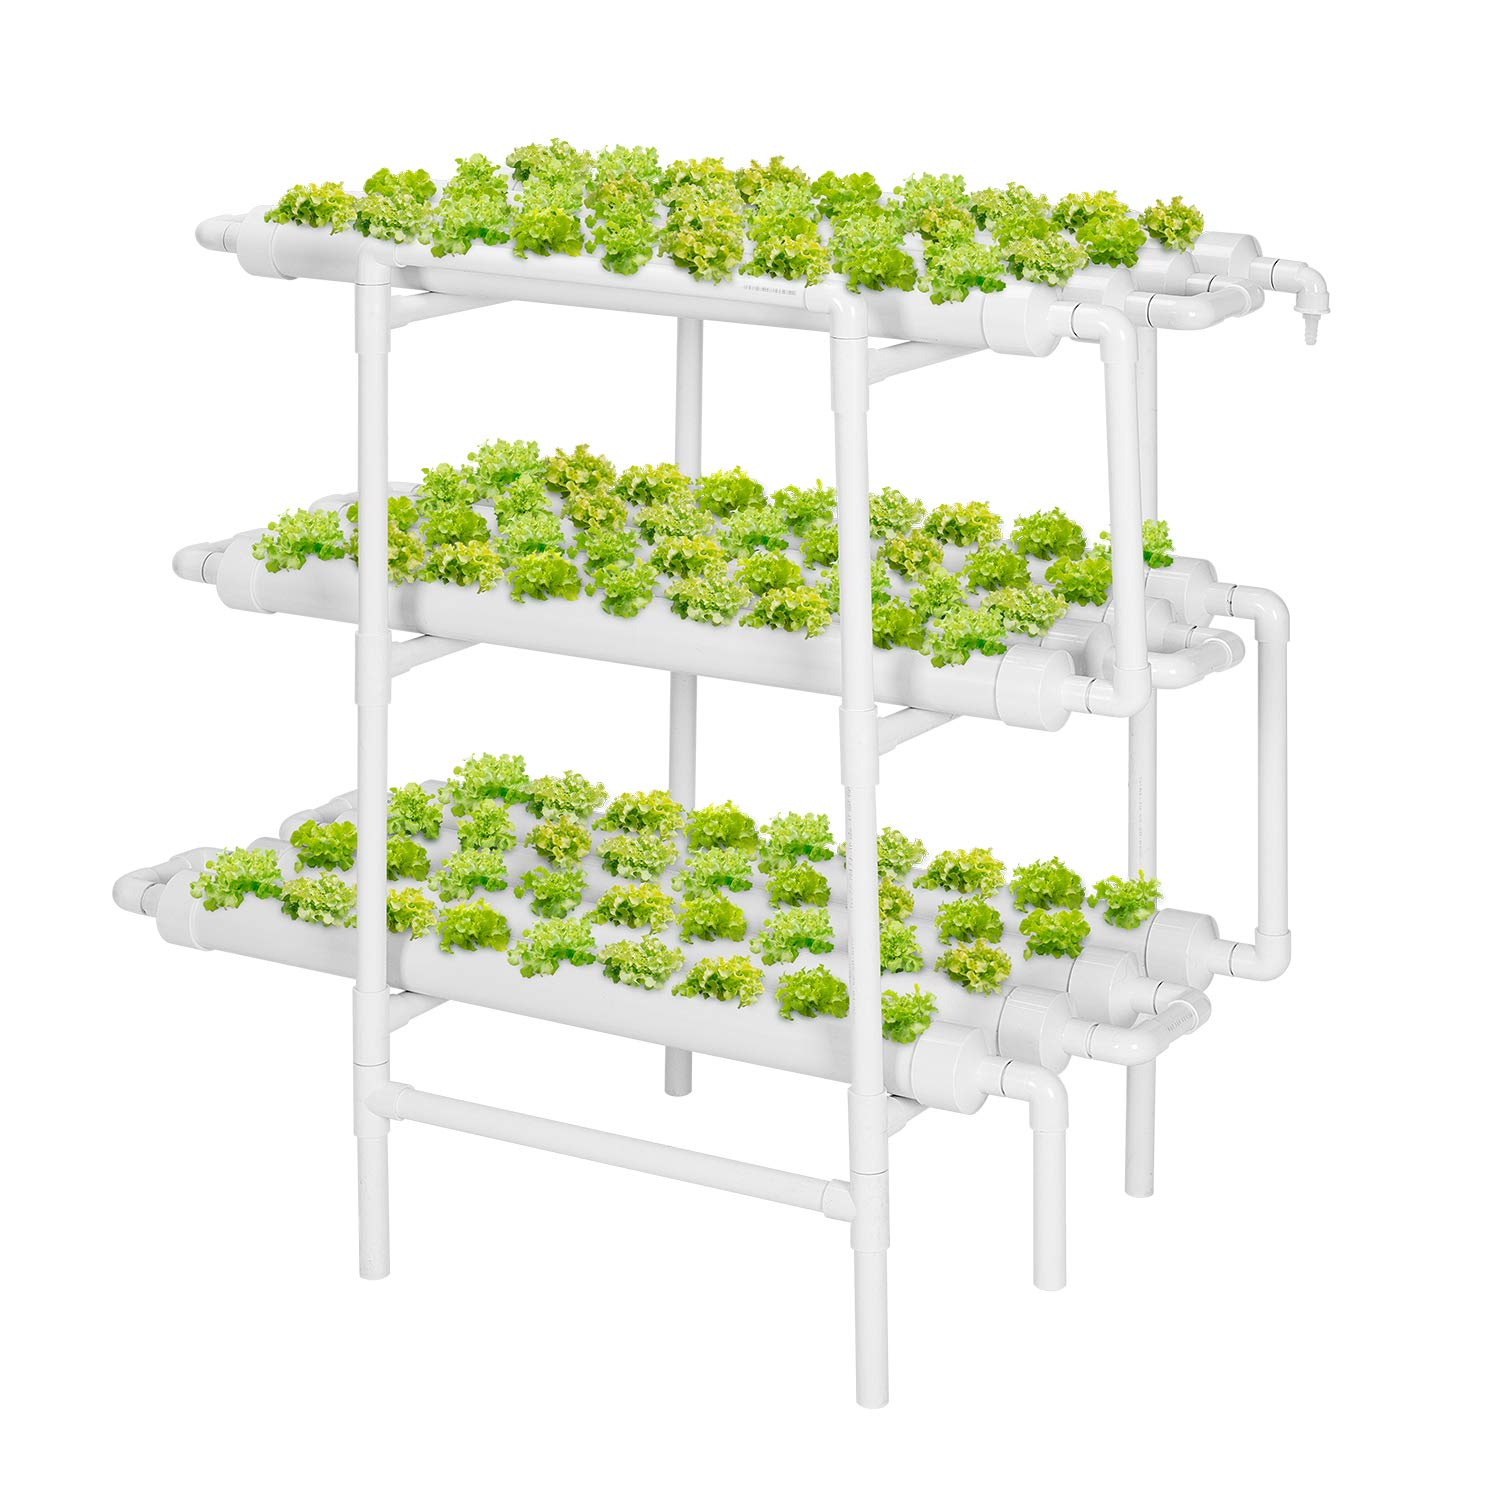 VIVOSUN Hydroponic Grow Kit, 3 Layers 108 Plant Sites 12 PVC Pipes Hydroponics Growing System with Water Pump, Pump Timer, Nest Basket and Sponge for Leafy Vegetables